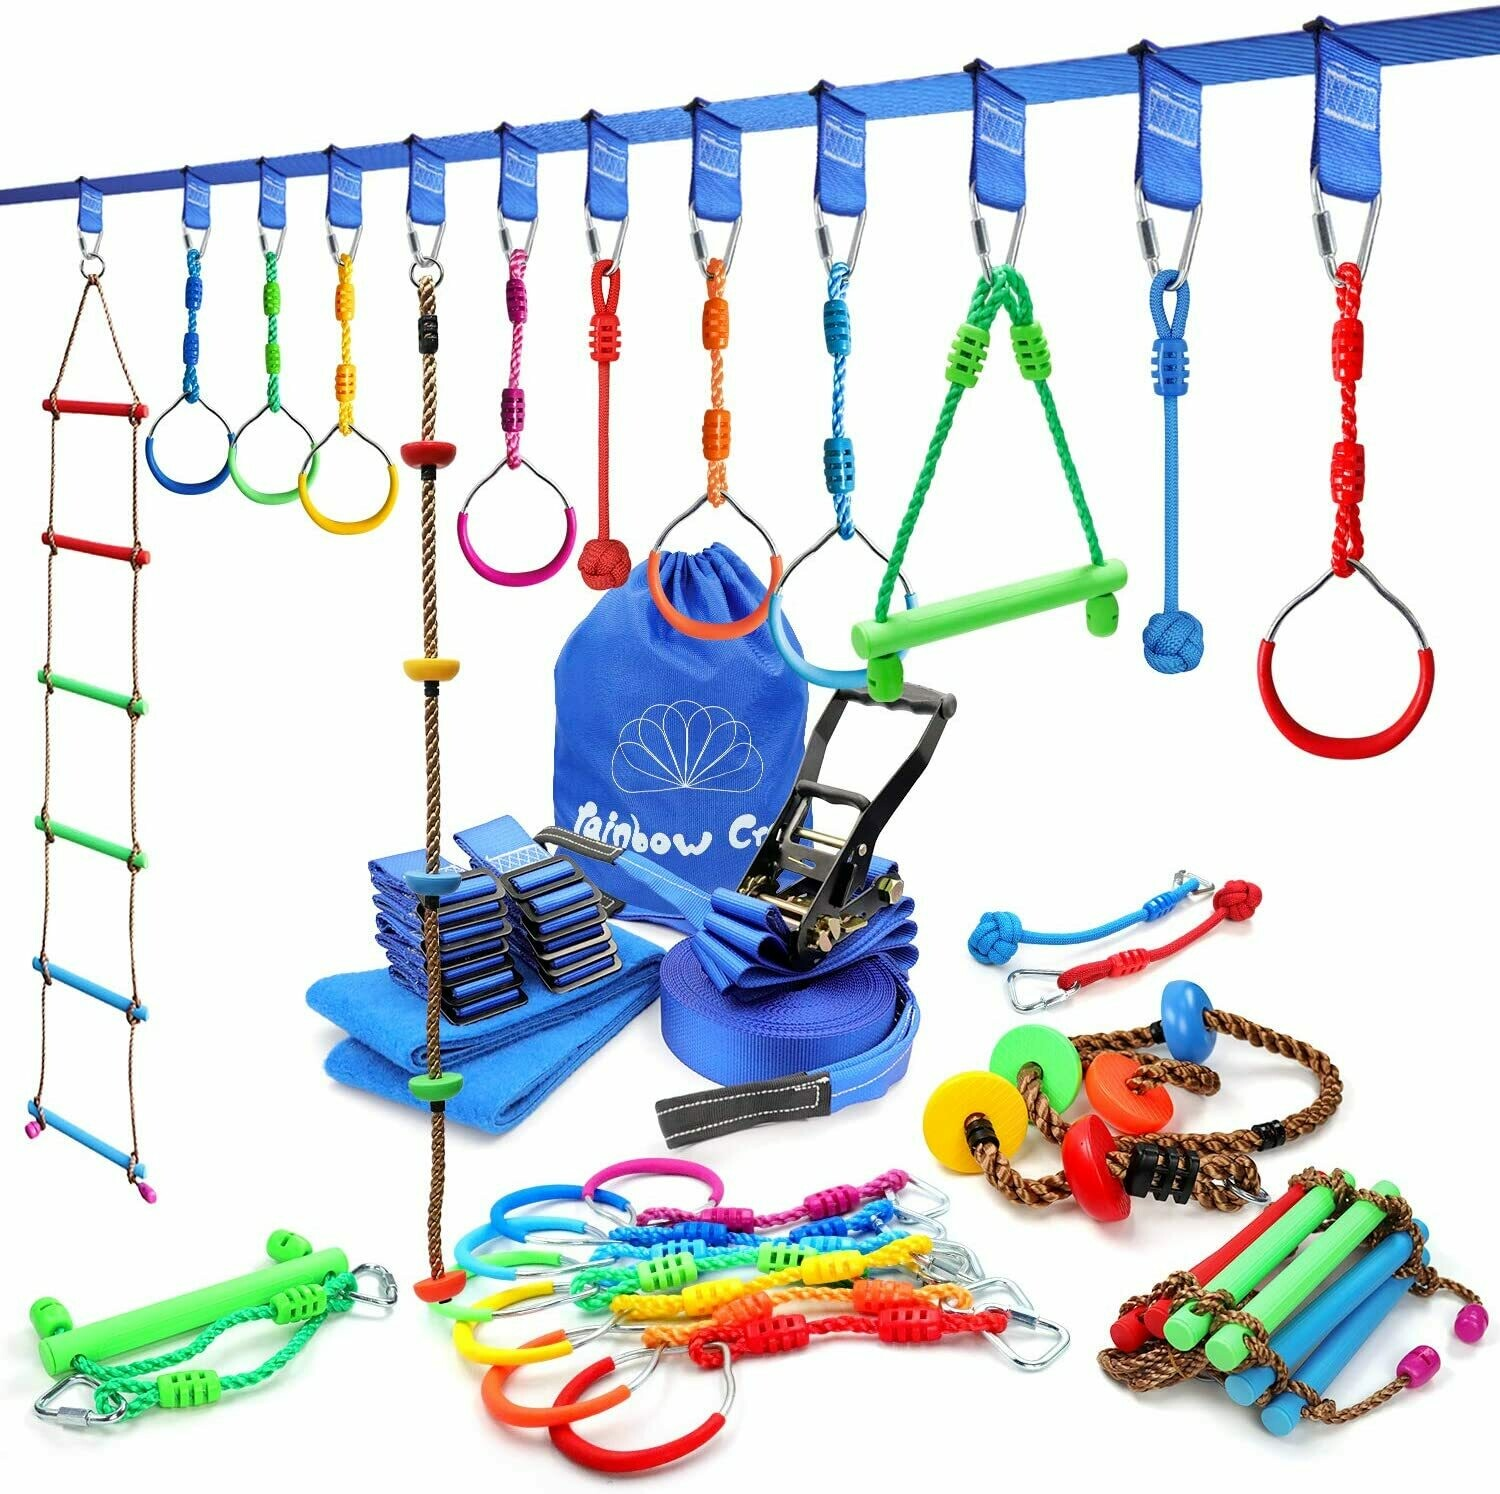 7pc Obstacle Course for Kids Backyard Training- High Strength Towing Strap Grade Ninja line